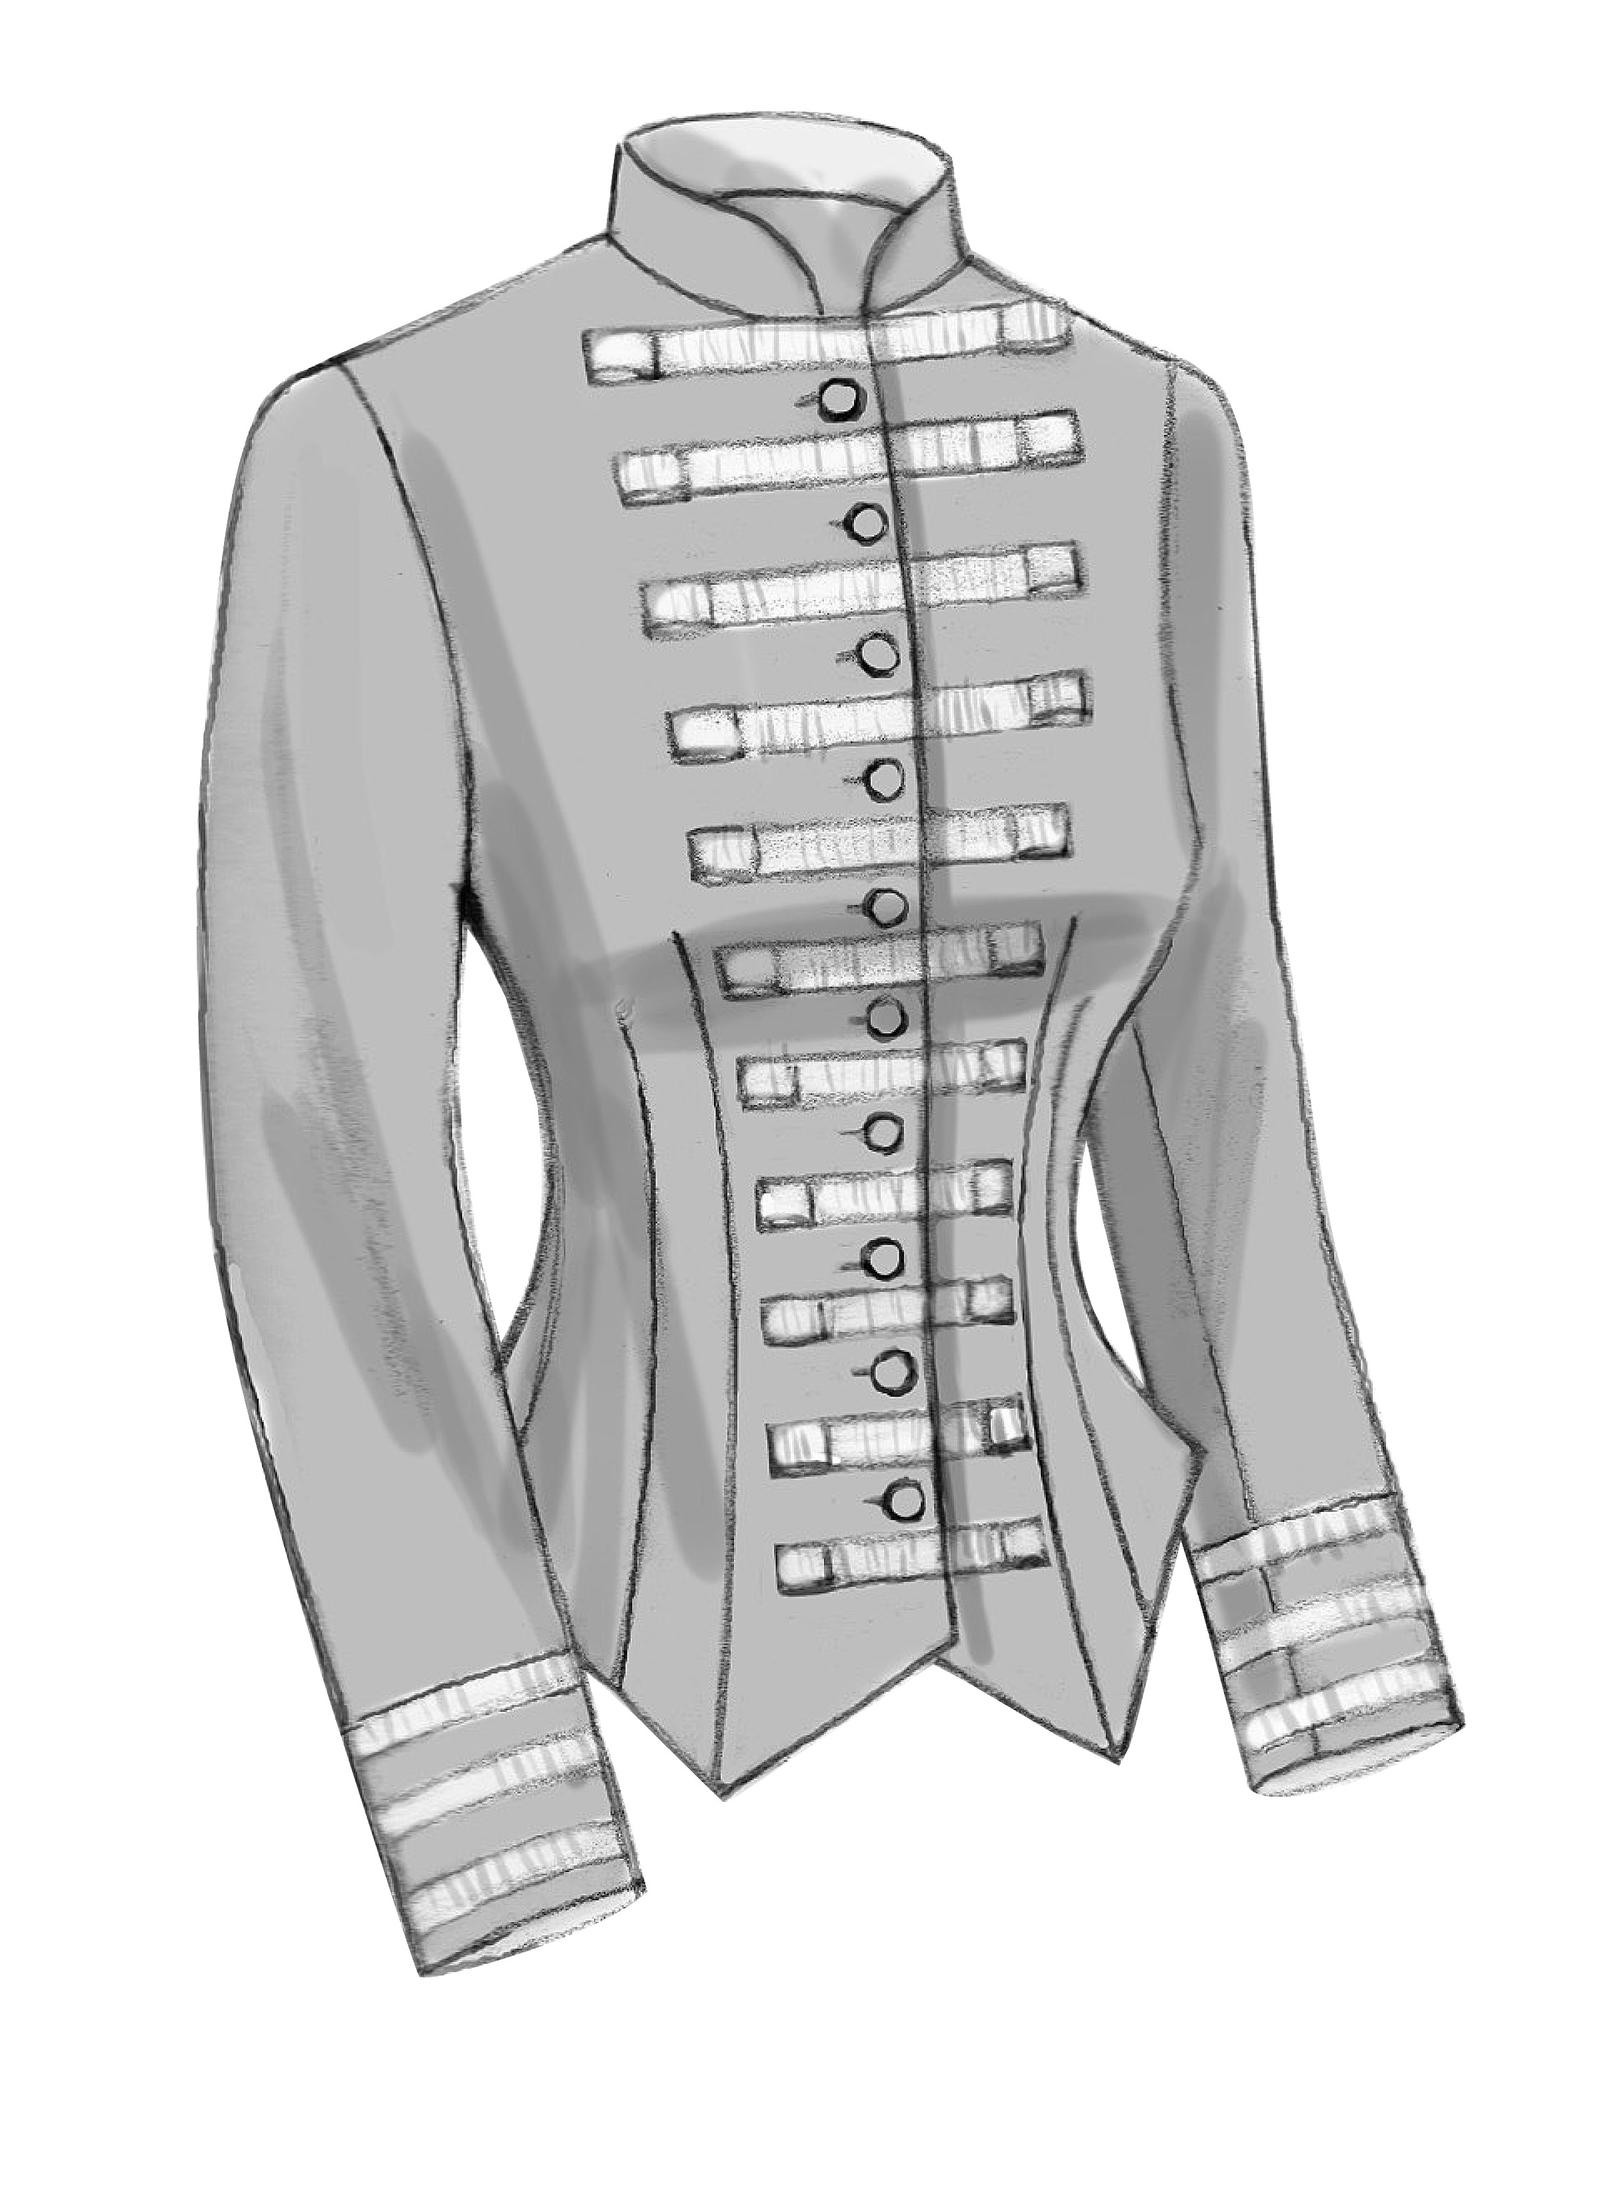 Historical Victorian Boned Back Pleat Jacket Costume Sewing Pattern 6 8 10 12 14